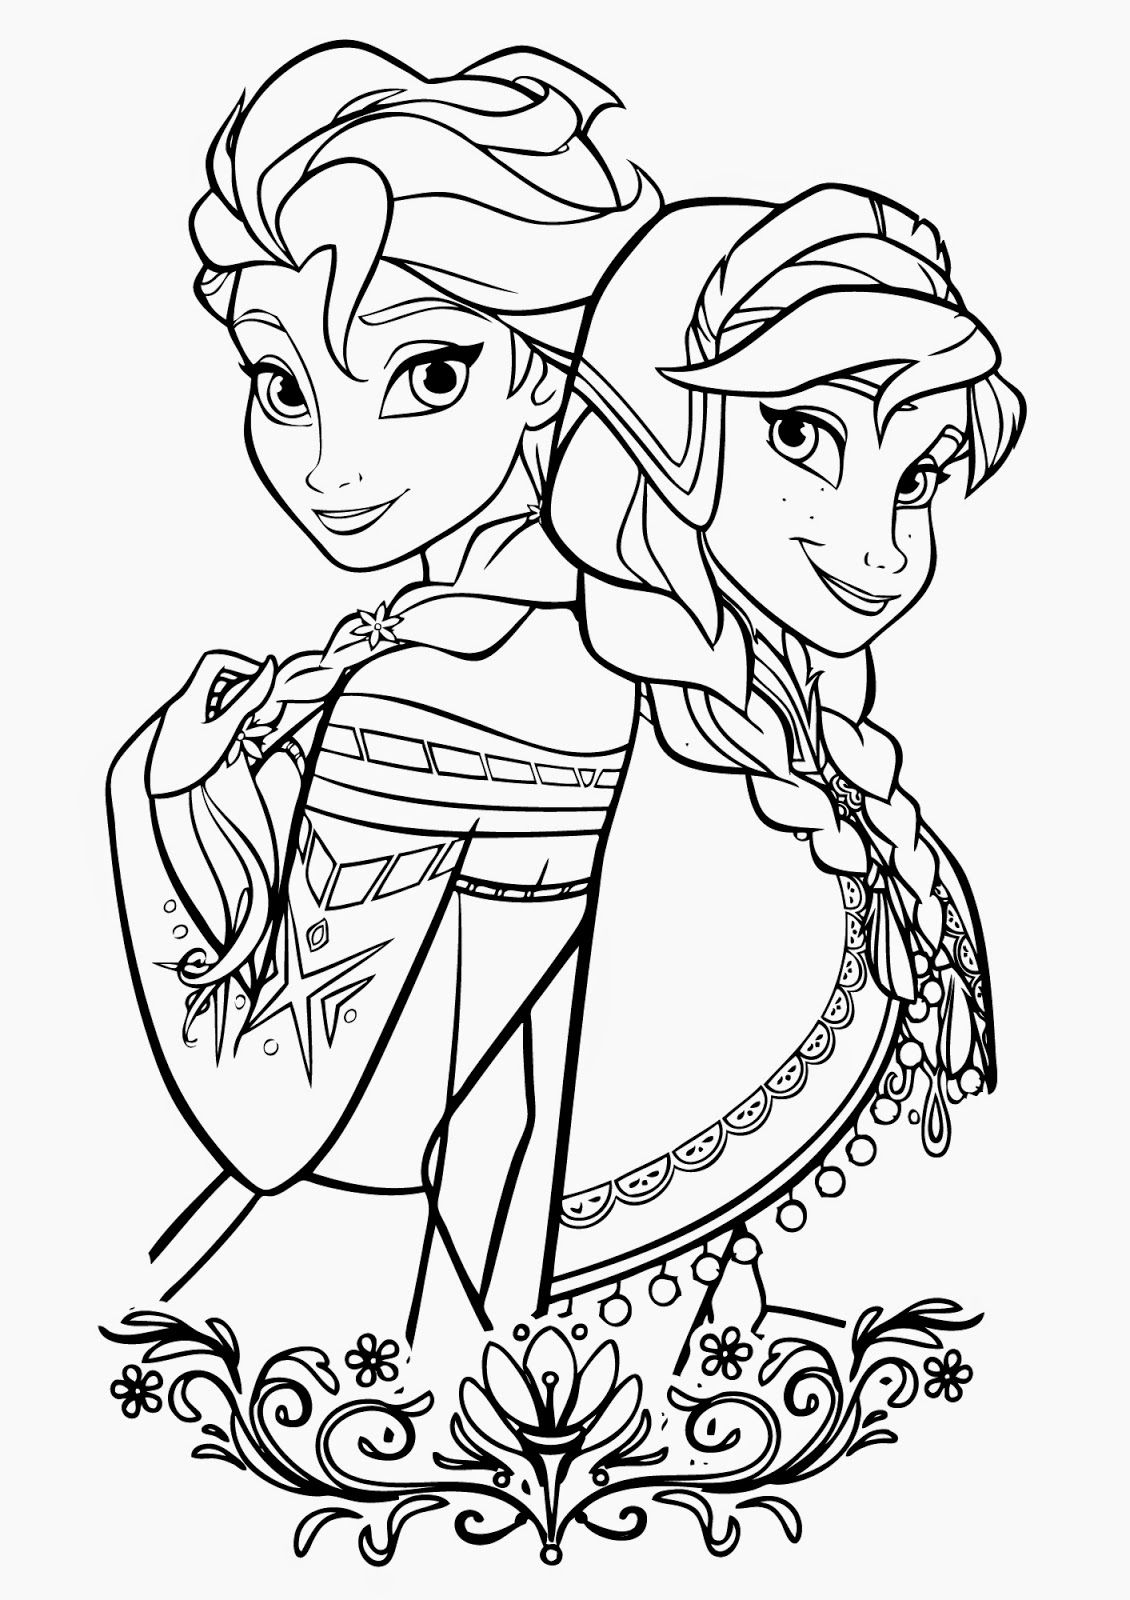 Free coloring in pages frozen - Free Coloring In Pages Frozen 5